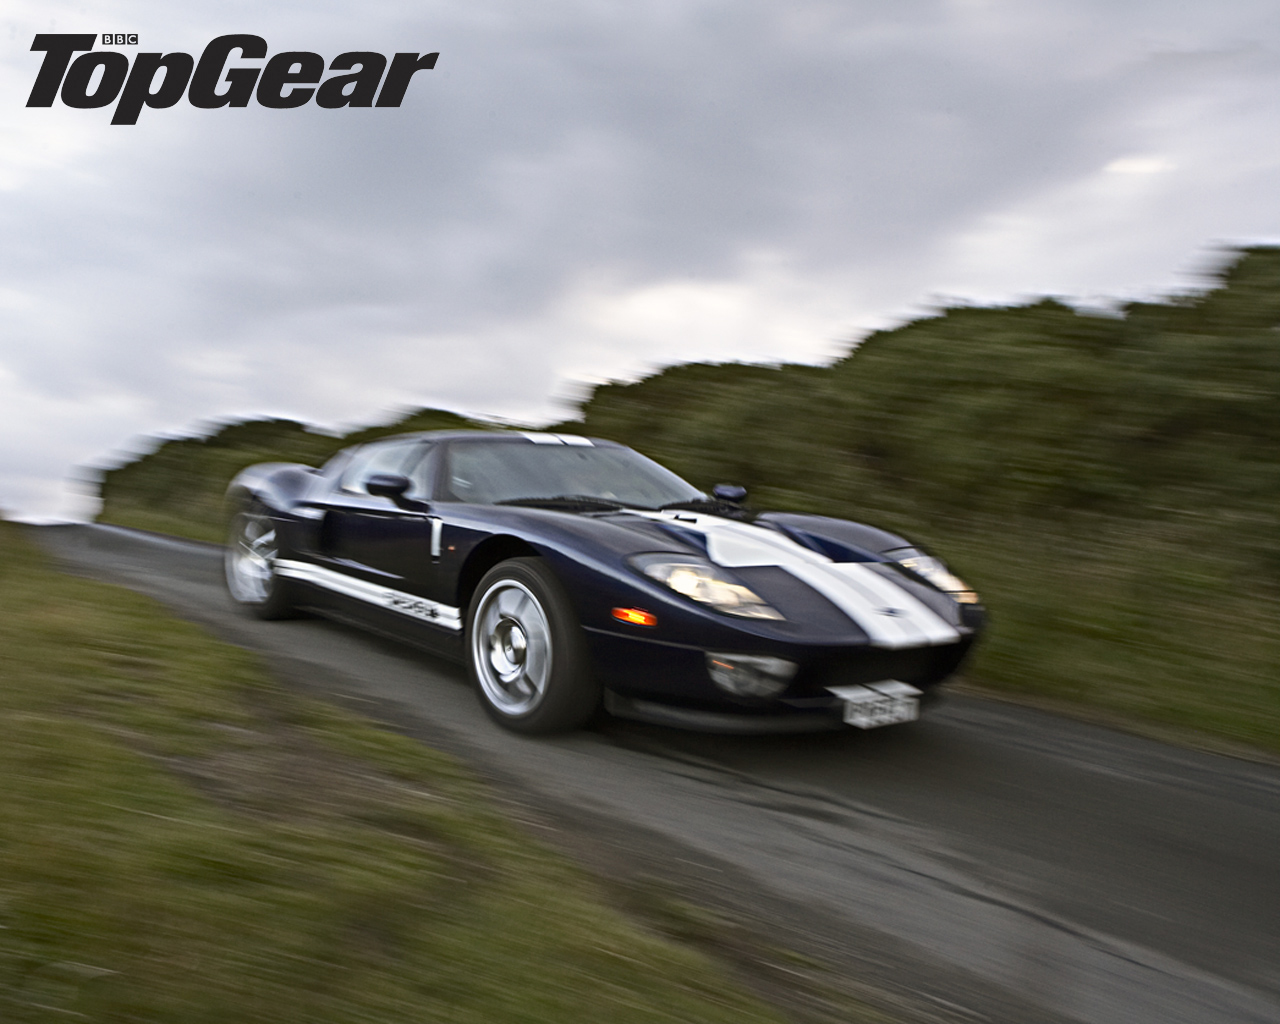 top gear images top gear hd wallpaper and background photos